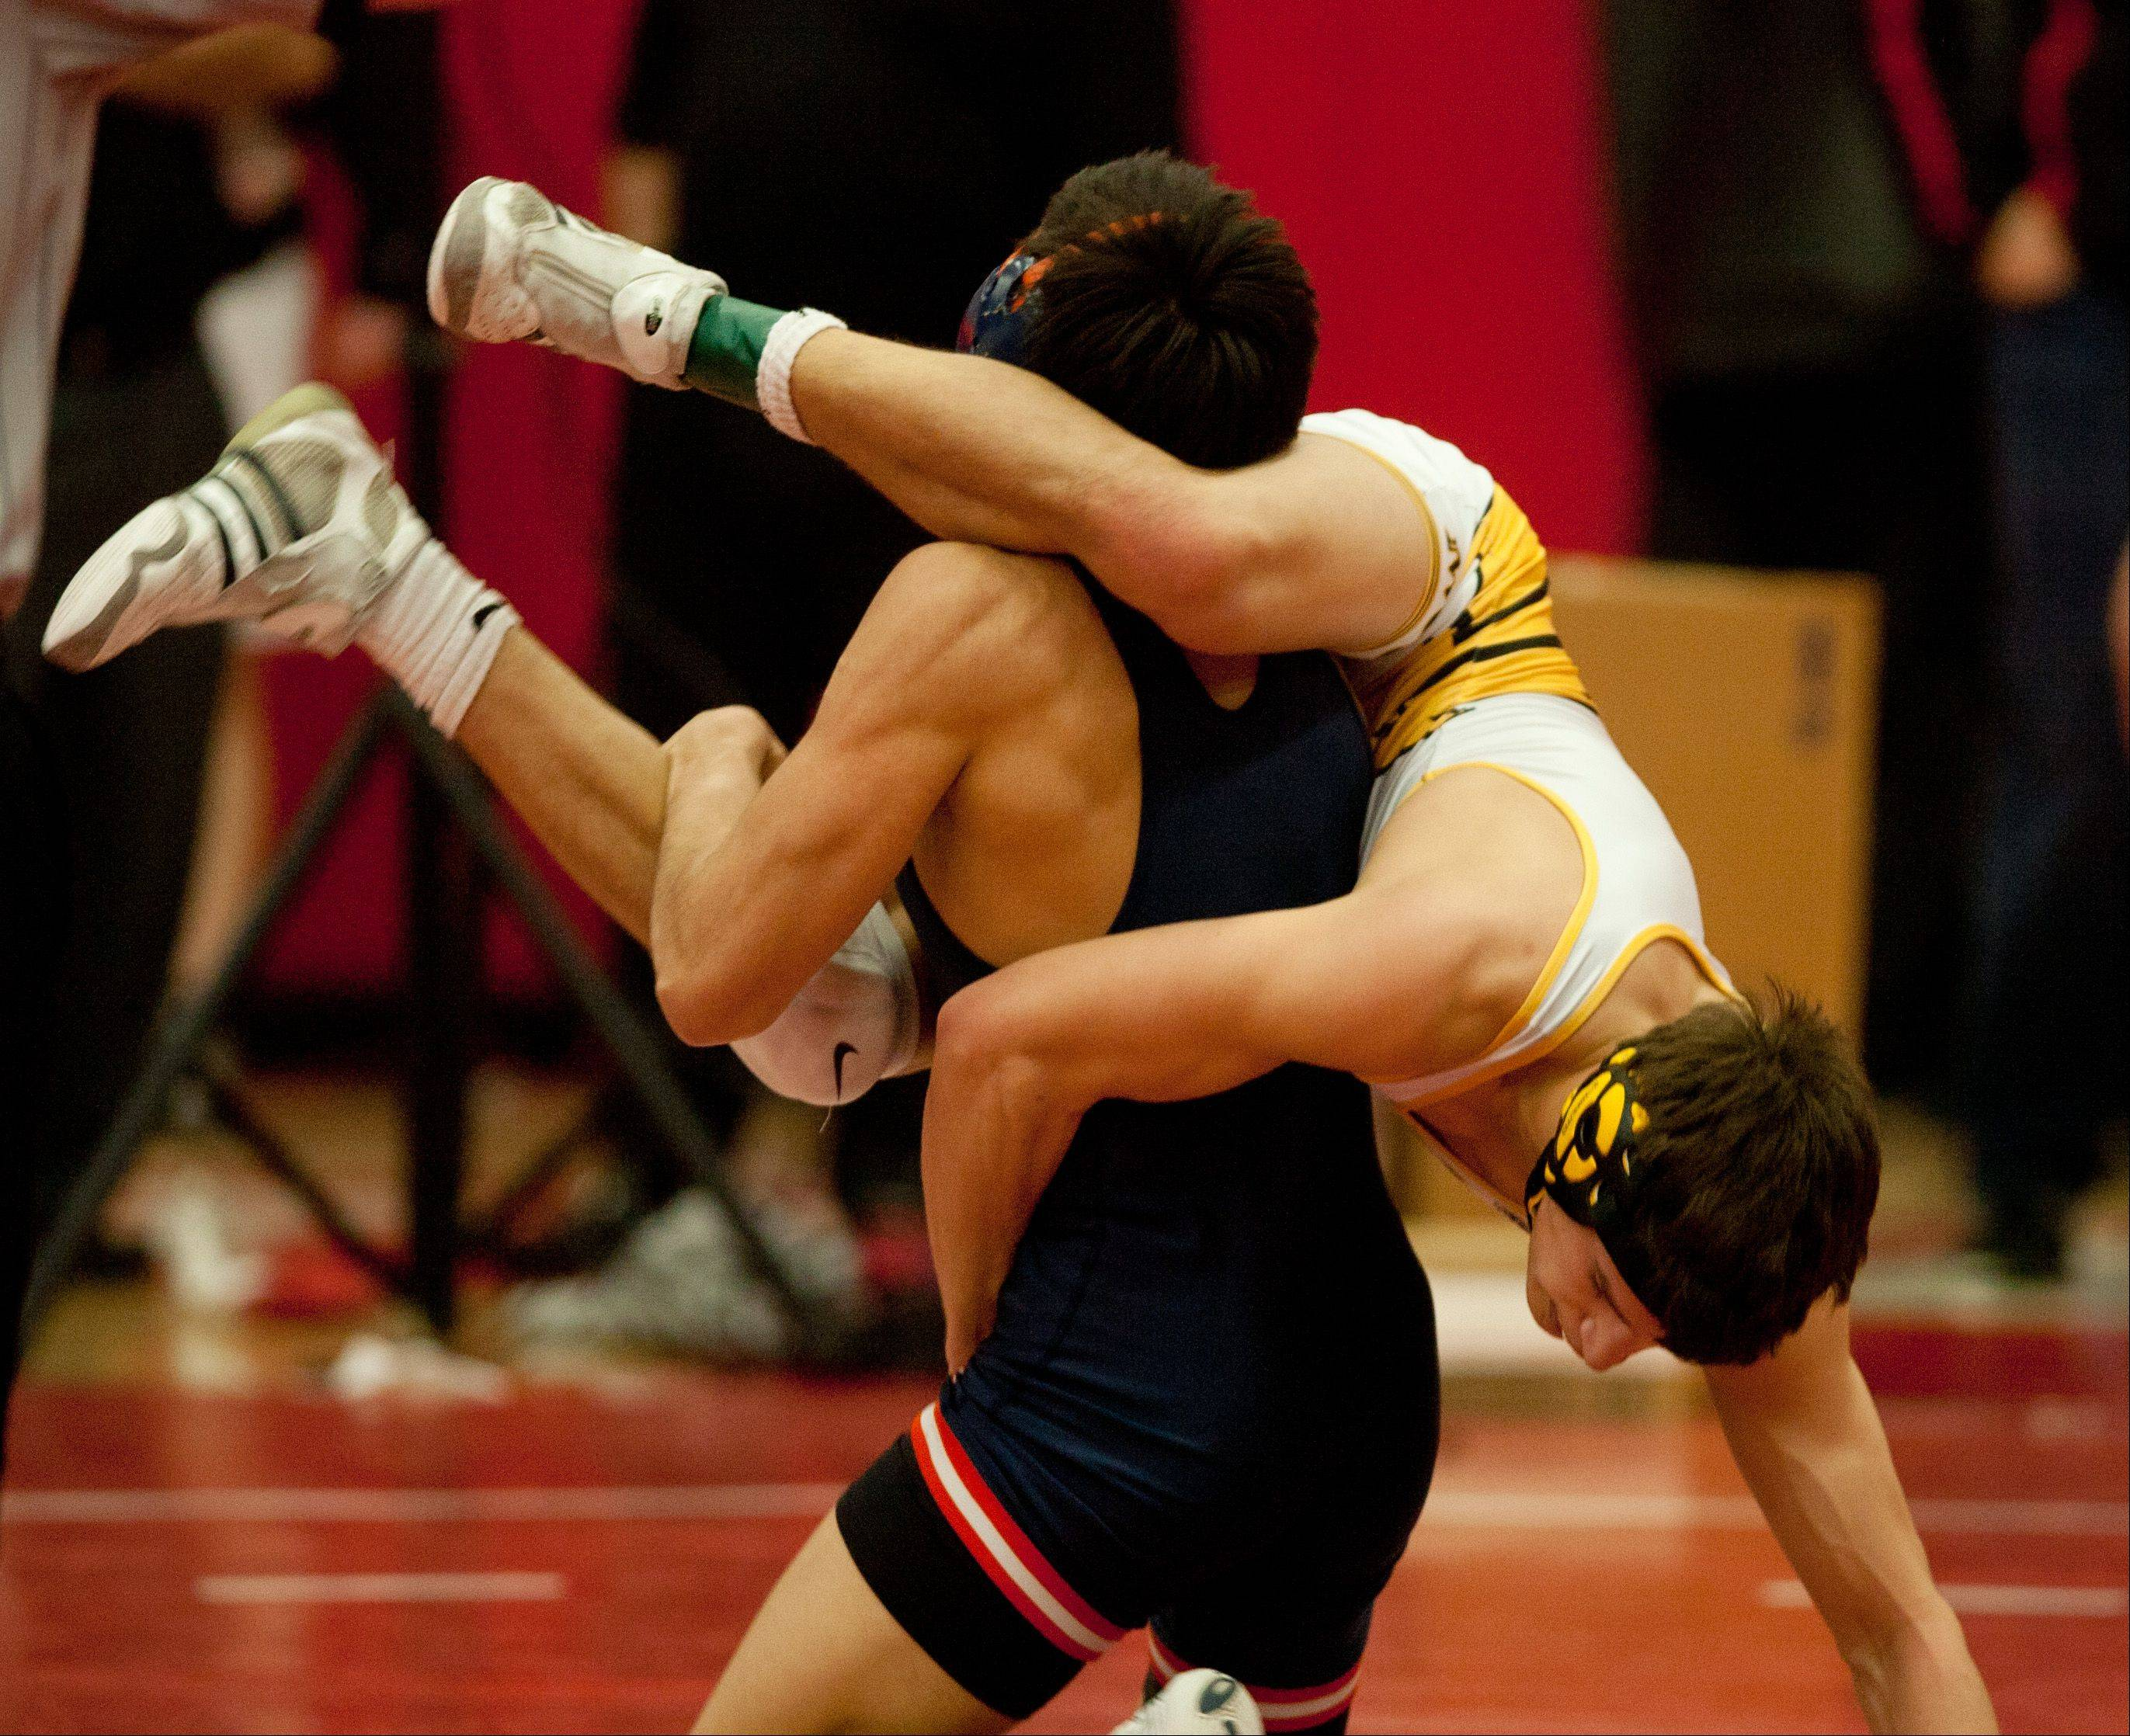 Metea Valley�s Kenan Carter hangs on for a 6-3 win over Naperville North�s Joe Knurek in the 126-pound class of the Class 3A Naperville Central Wrestling Regional.